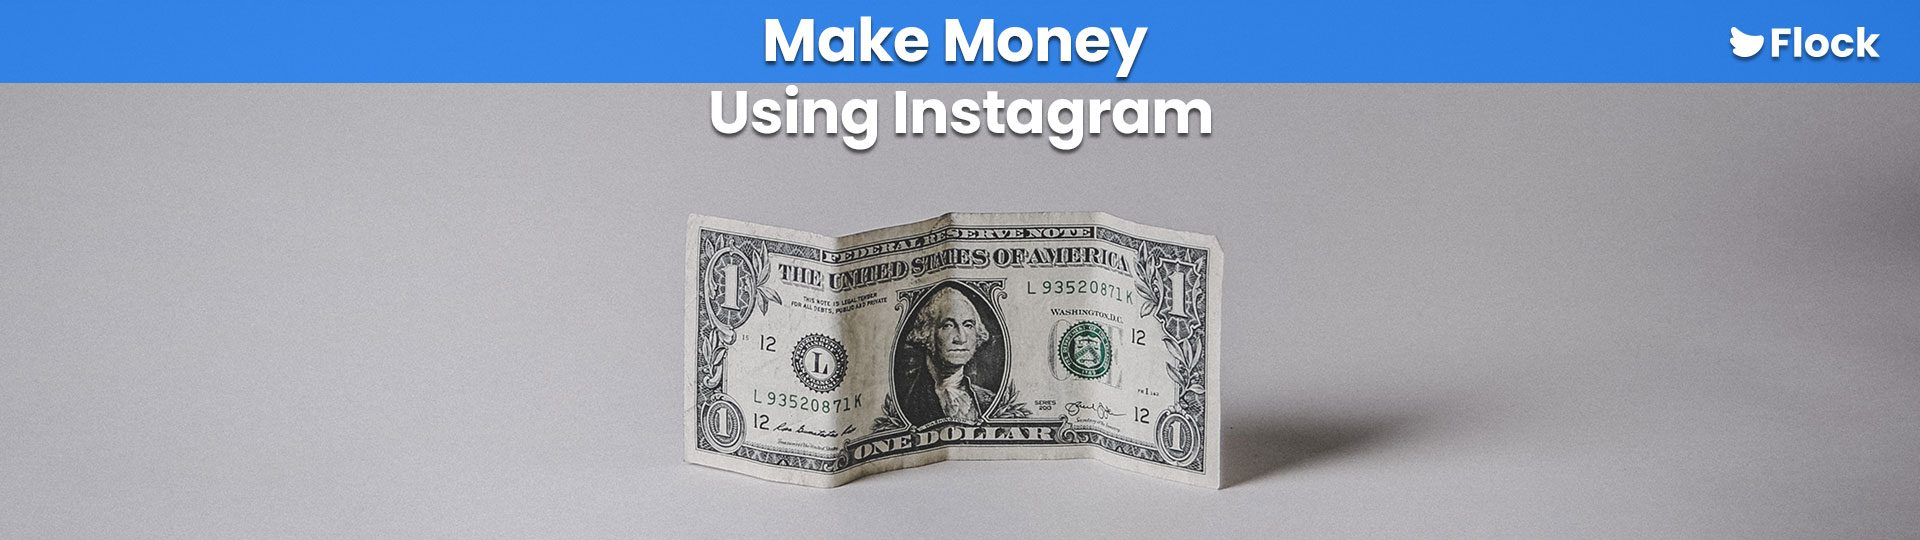 Make Money Using Instagram